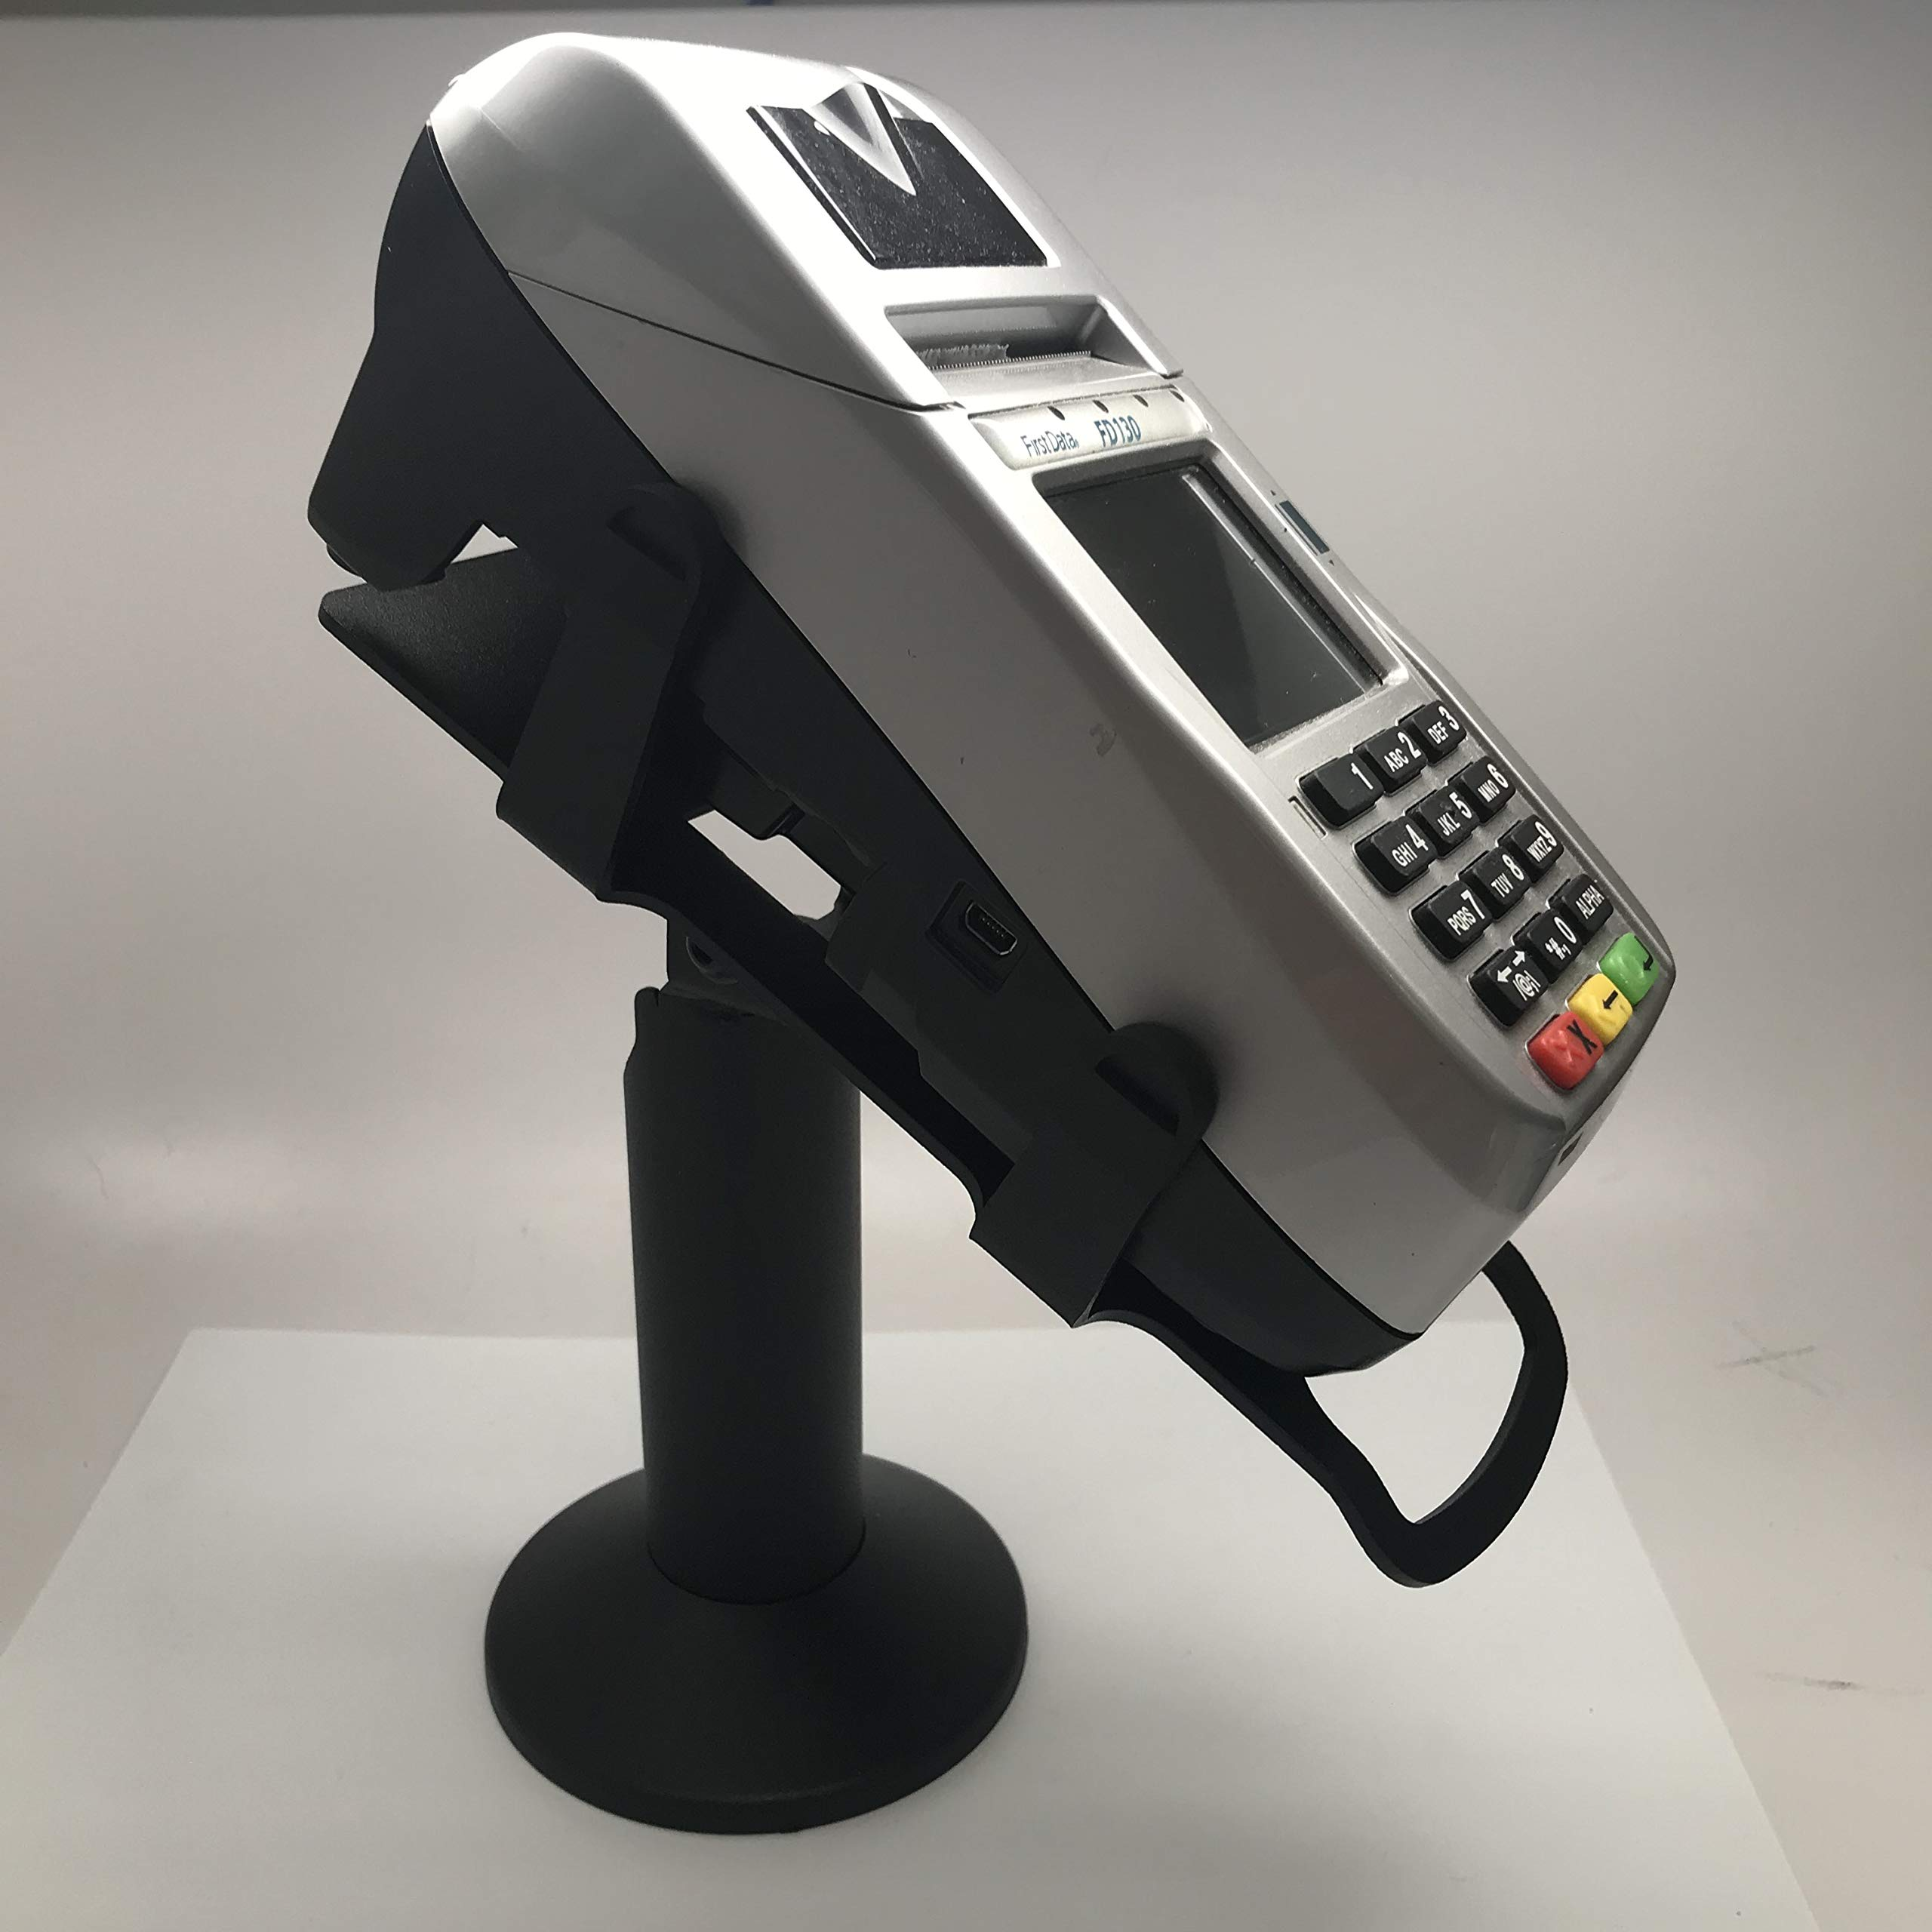 DCCStands FD-130 EMV with Swivel Stand Combo